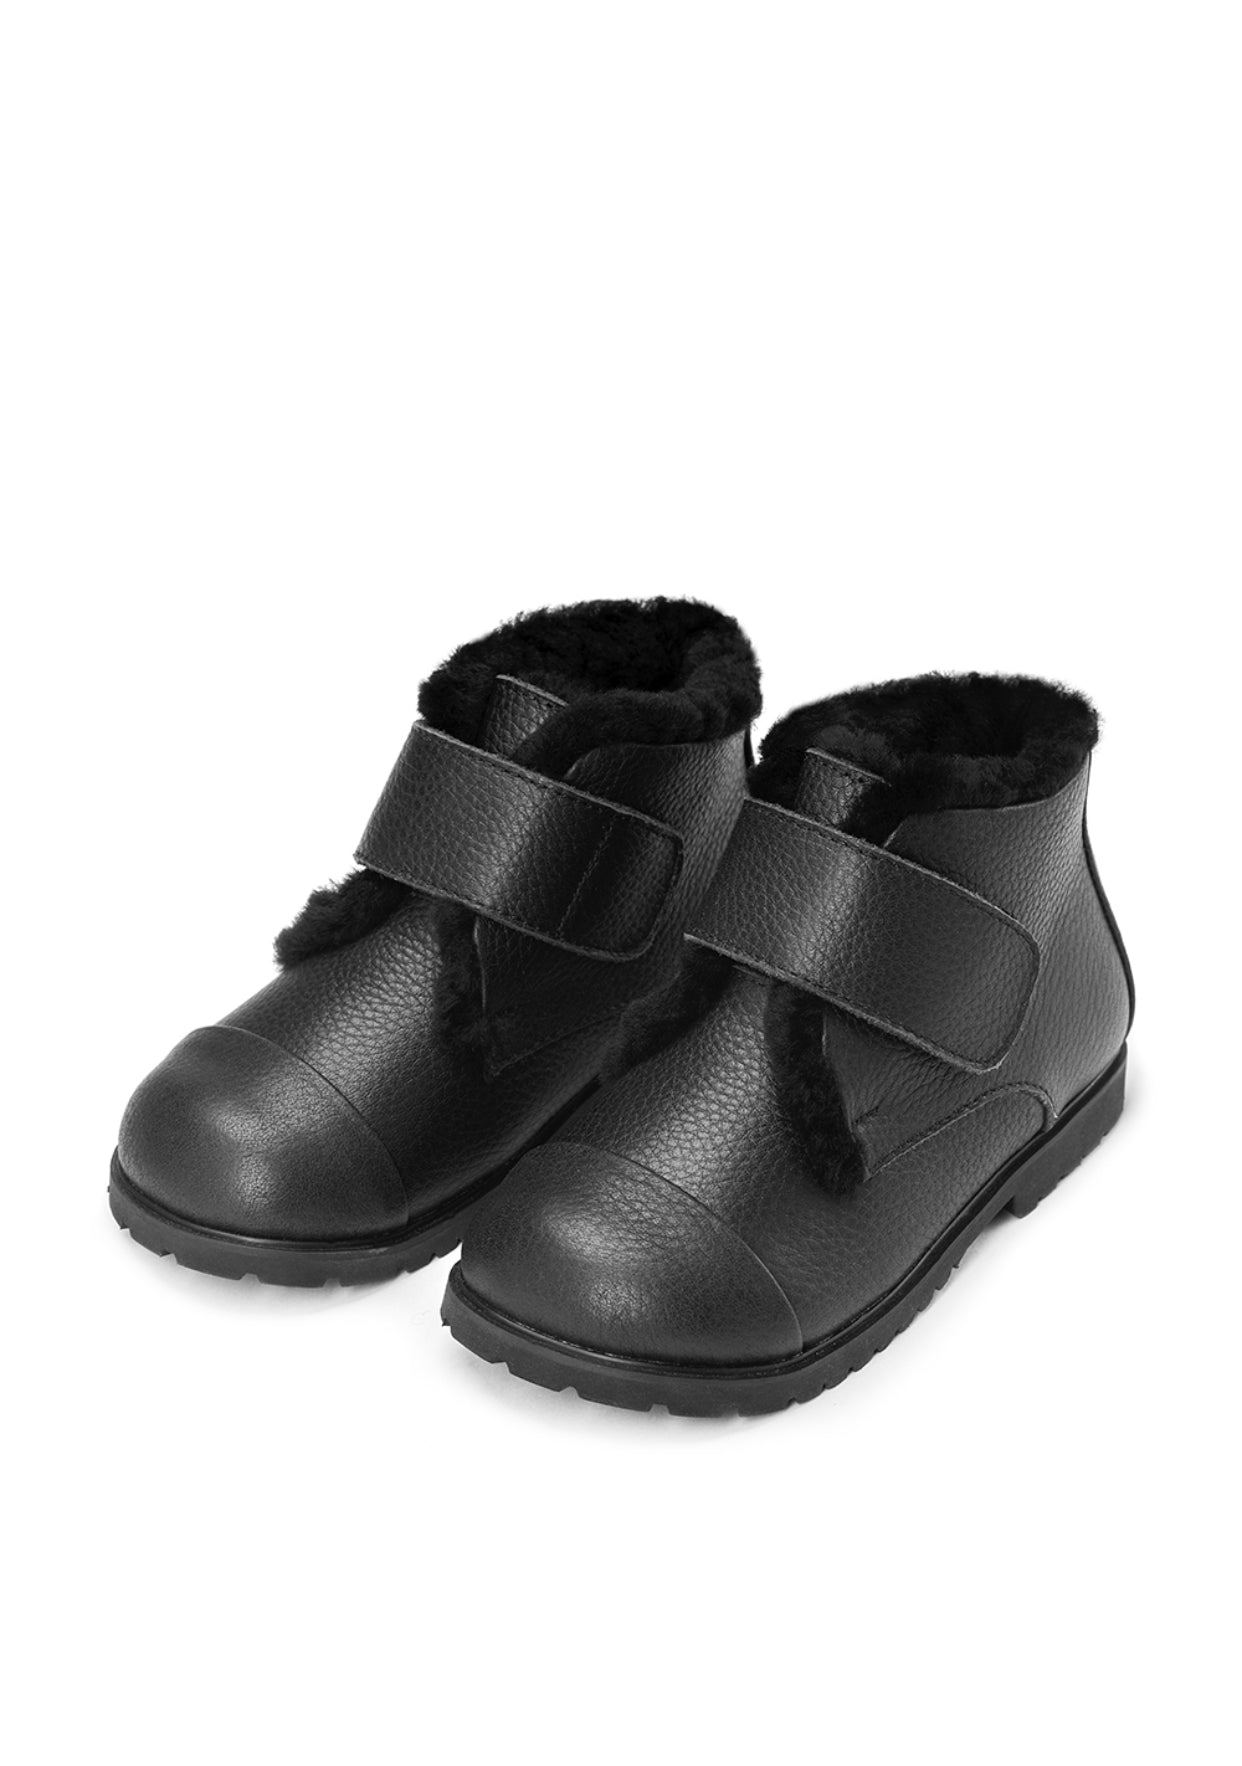 Age of Innocence Zoey Boots in Black